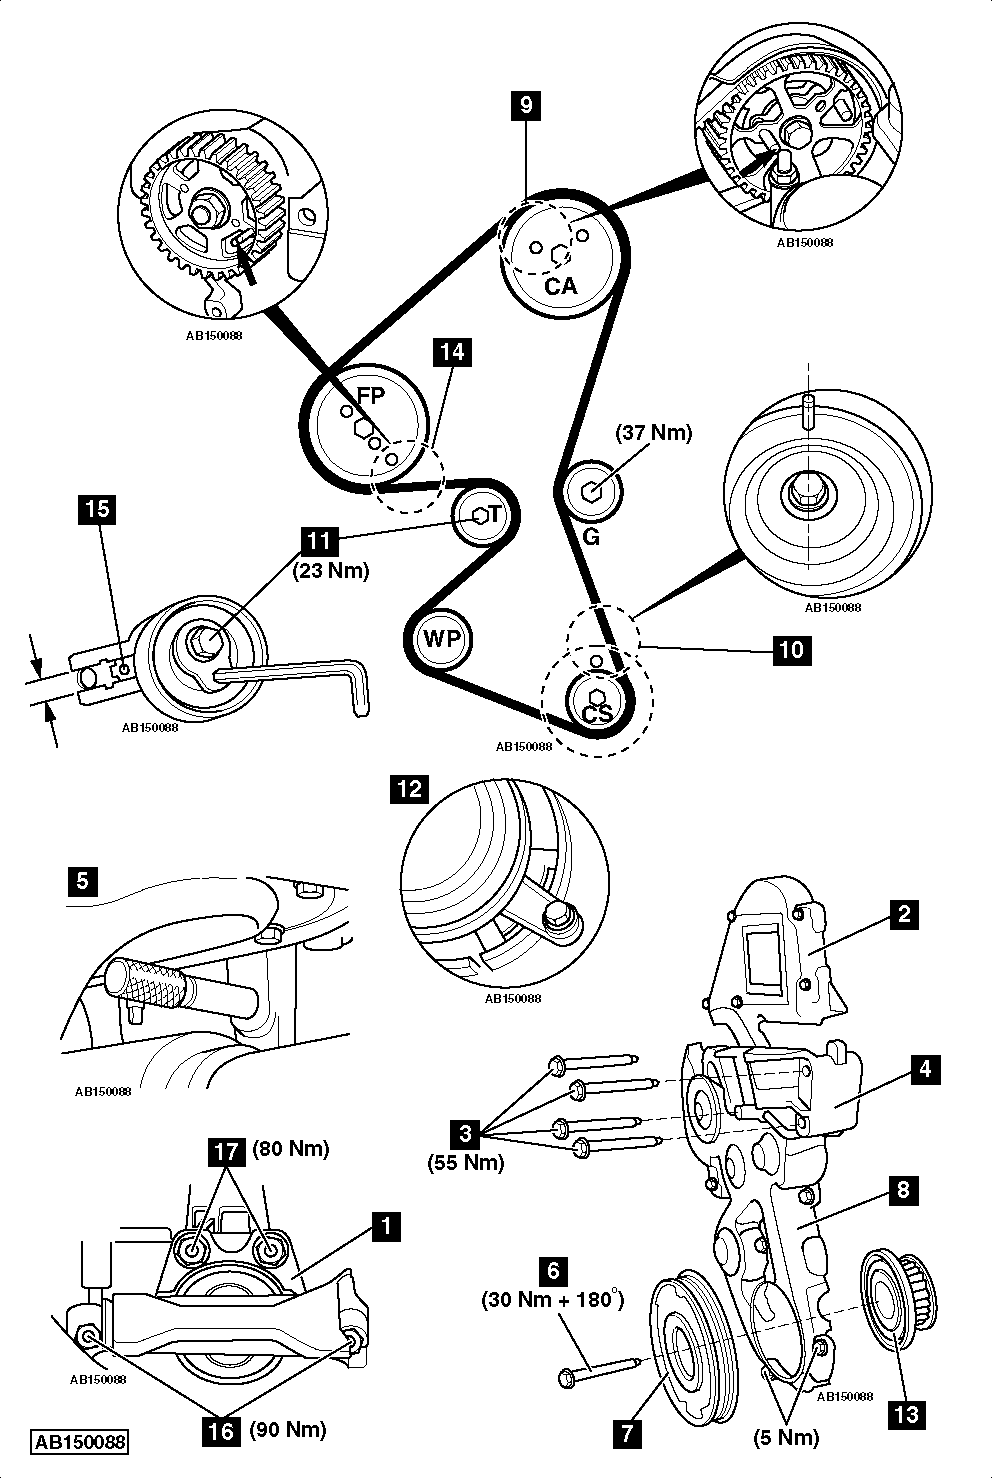 Saab 9 3 2 0 Engine Diagram also 2002 Toyota Highlander O2 Sensor Location in addition Toyota Camry Solara 2 2 1998 Specs And Images furthermore 361339137706 together with Dodge Ram 2002 2008  mon Engine Problems 394281. on toyota 2 7 timing chain replacement